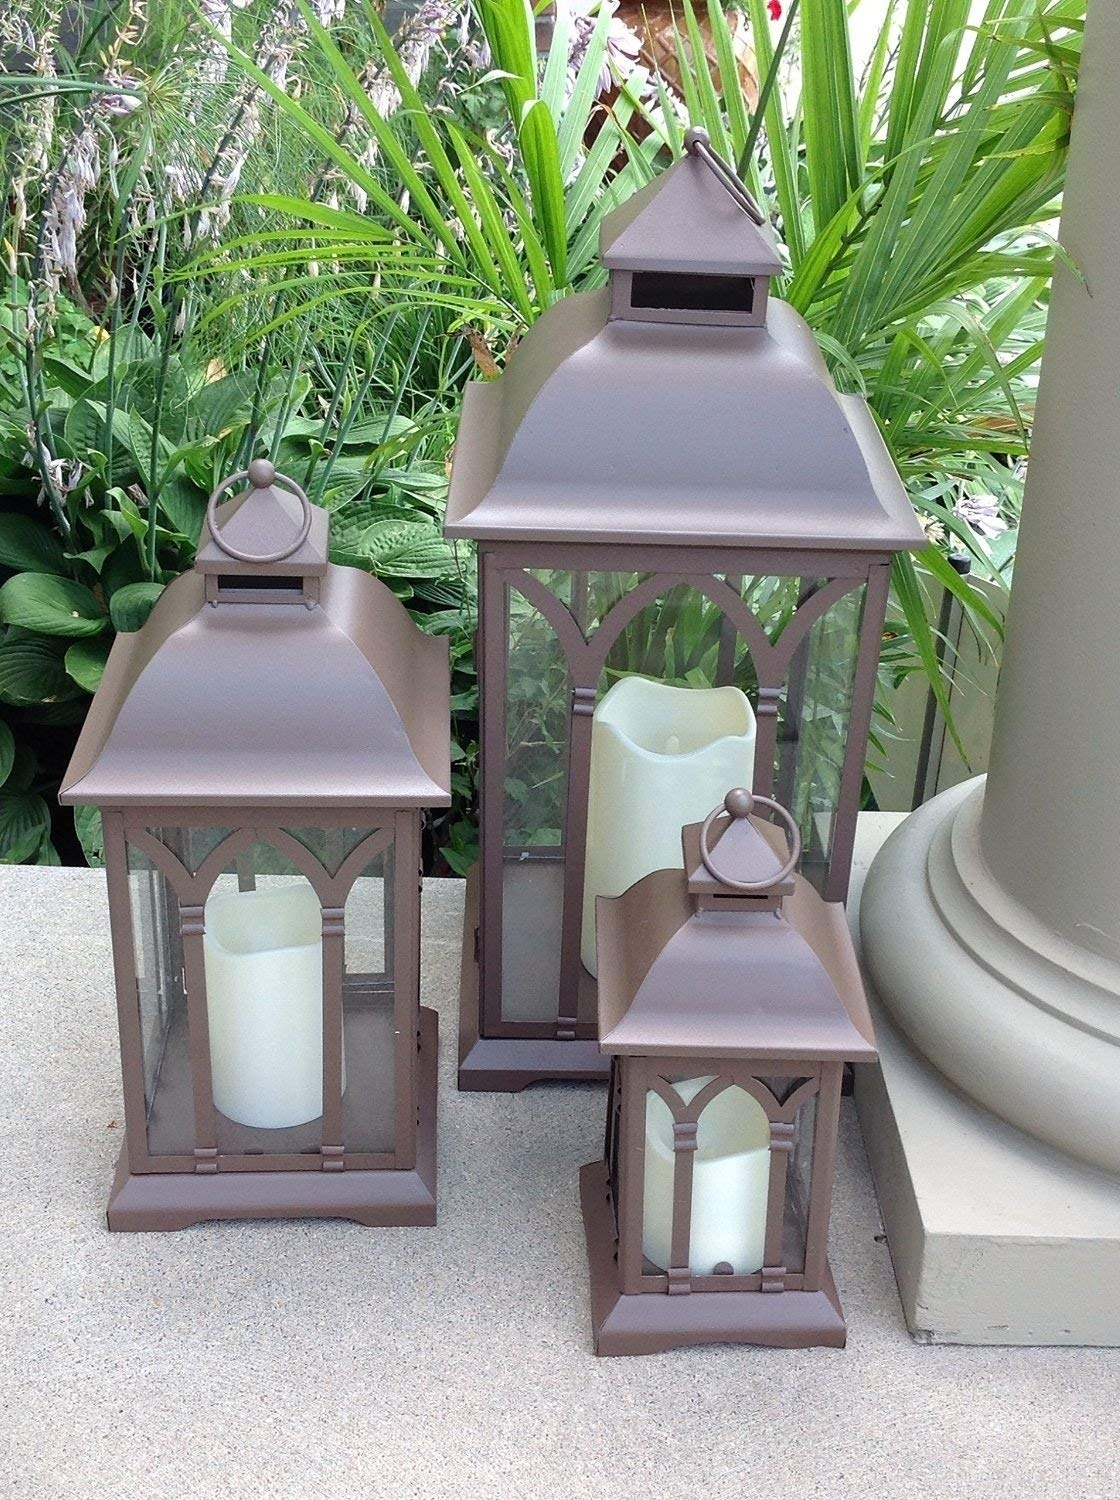 Amazon : Pebble Lane Living 3Pc Set Of Outdoor Large Indoor Or intended for Set Of 3 Outdoor Lanterns (Image 1 of 20)